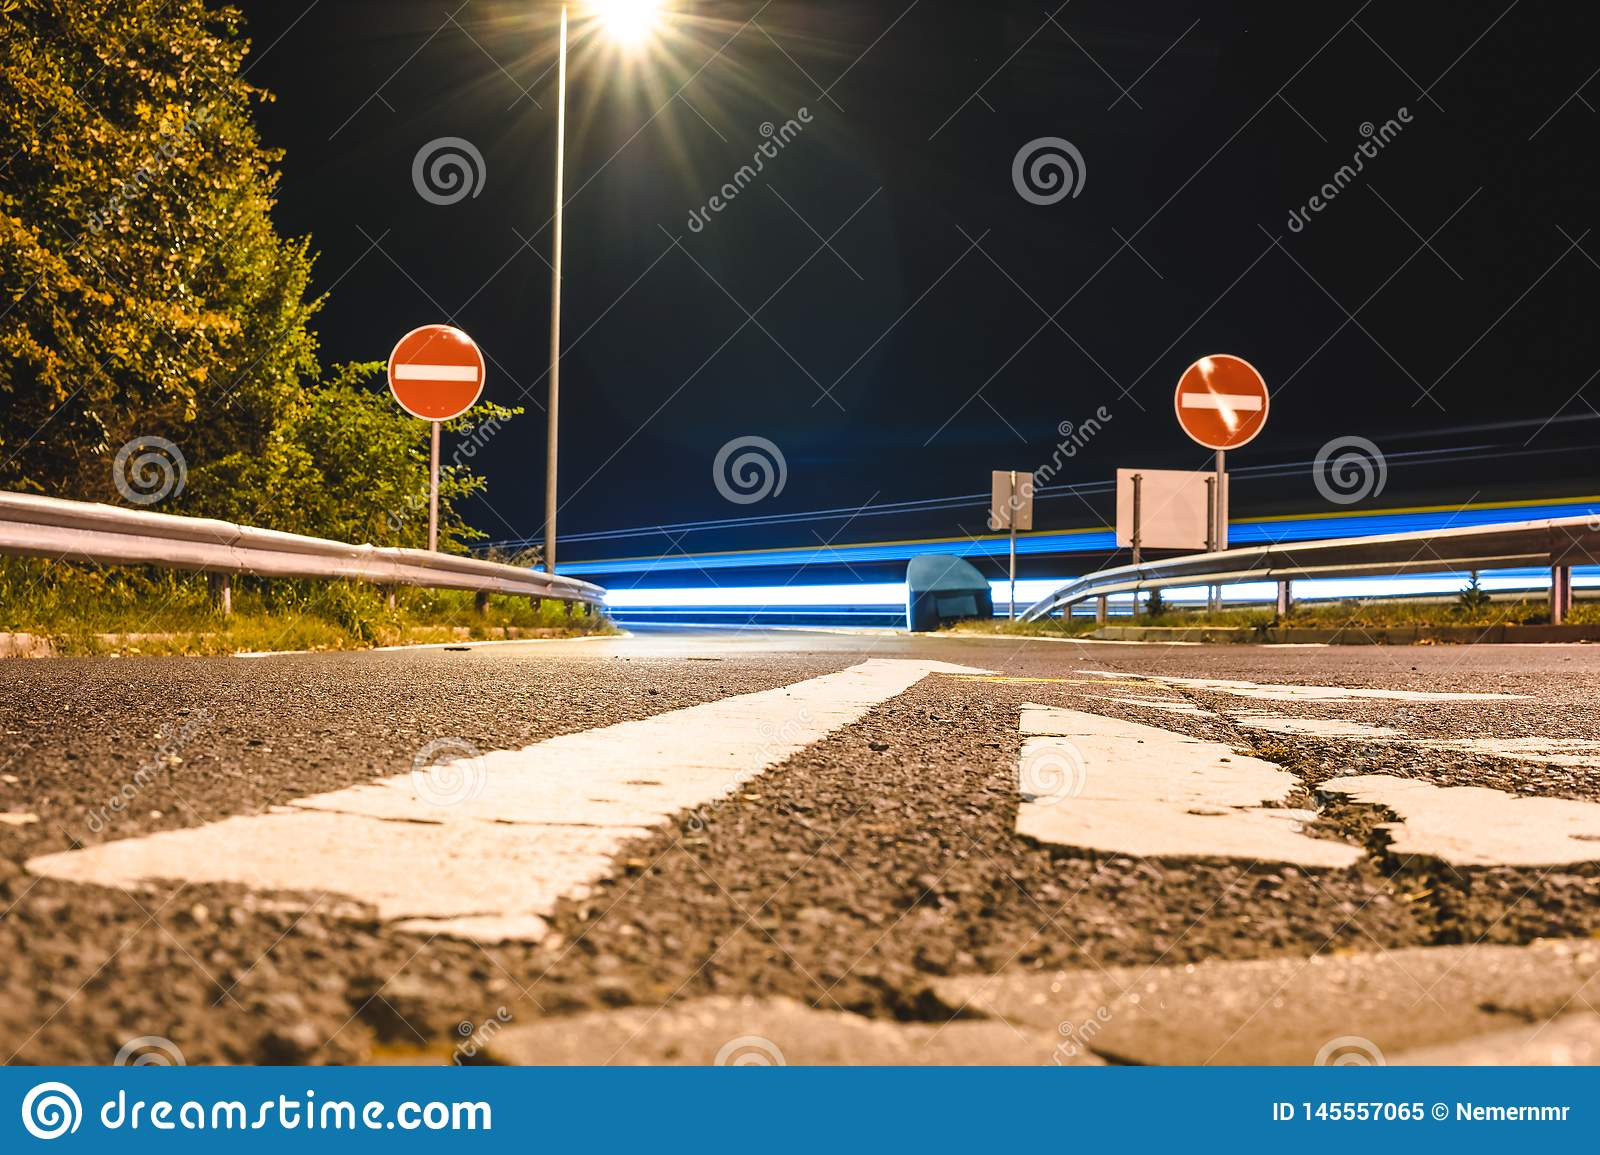 Empty road at night/Closed Road at Darkness